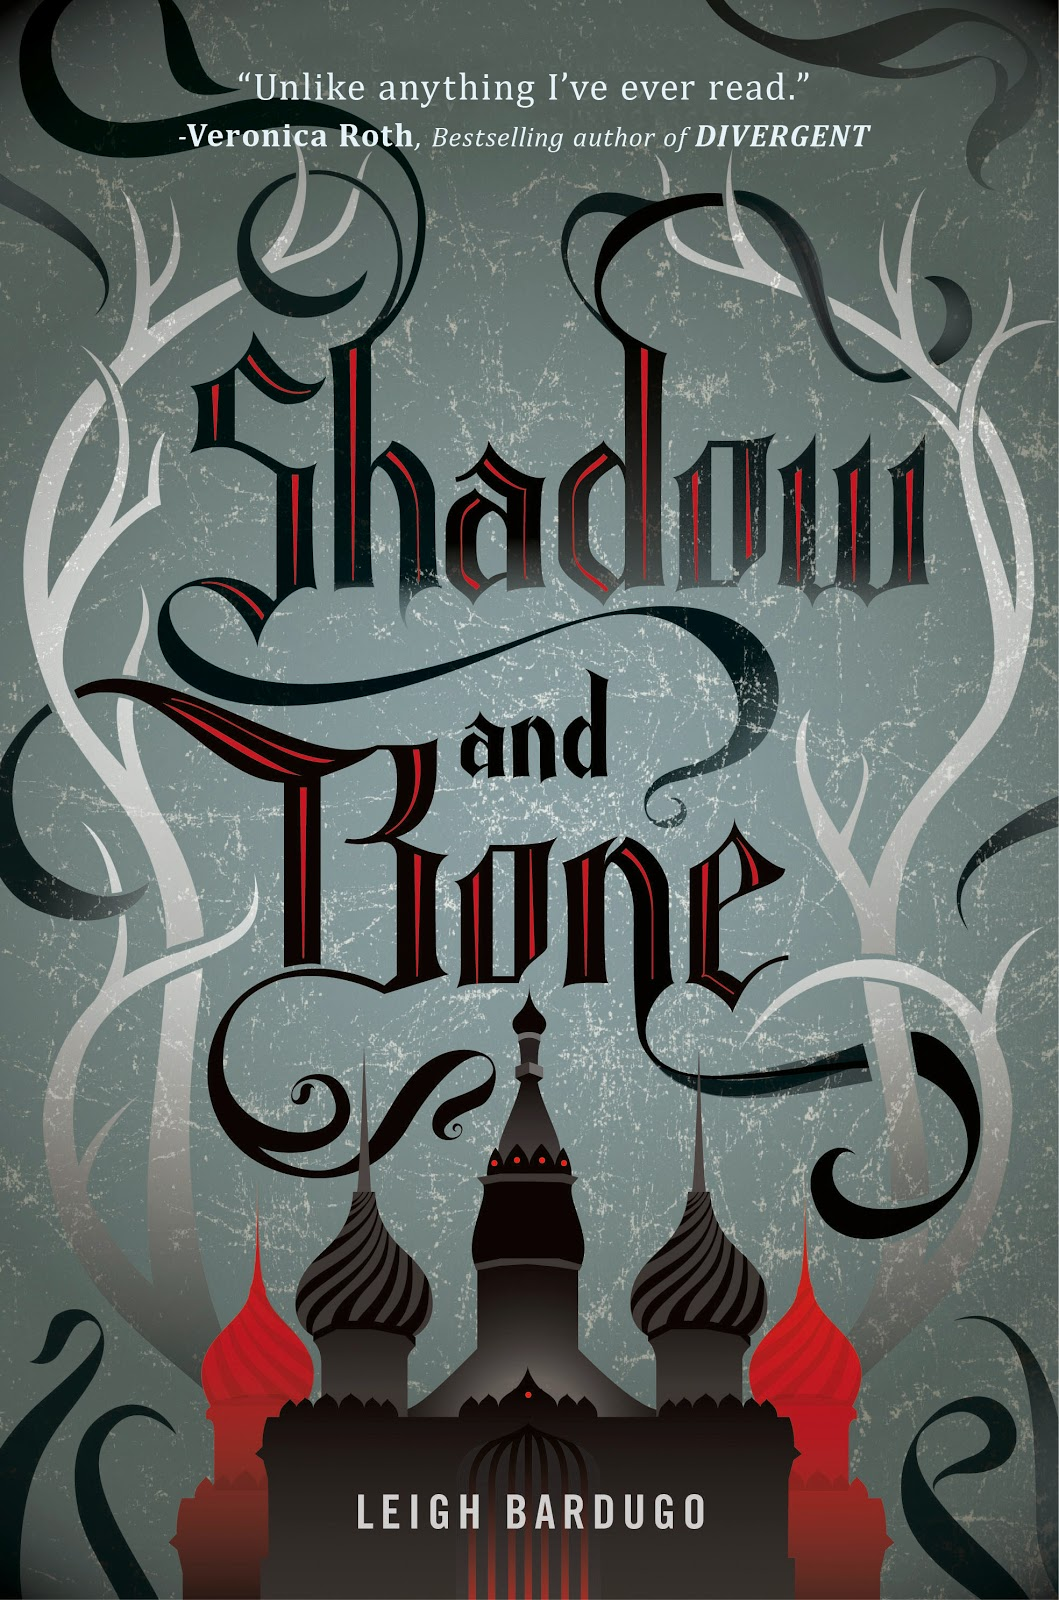 shadow and bone cover large hd by leigh bardugo grisha series fantasy ya young adult ssbookreviews sarah's reviews